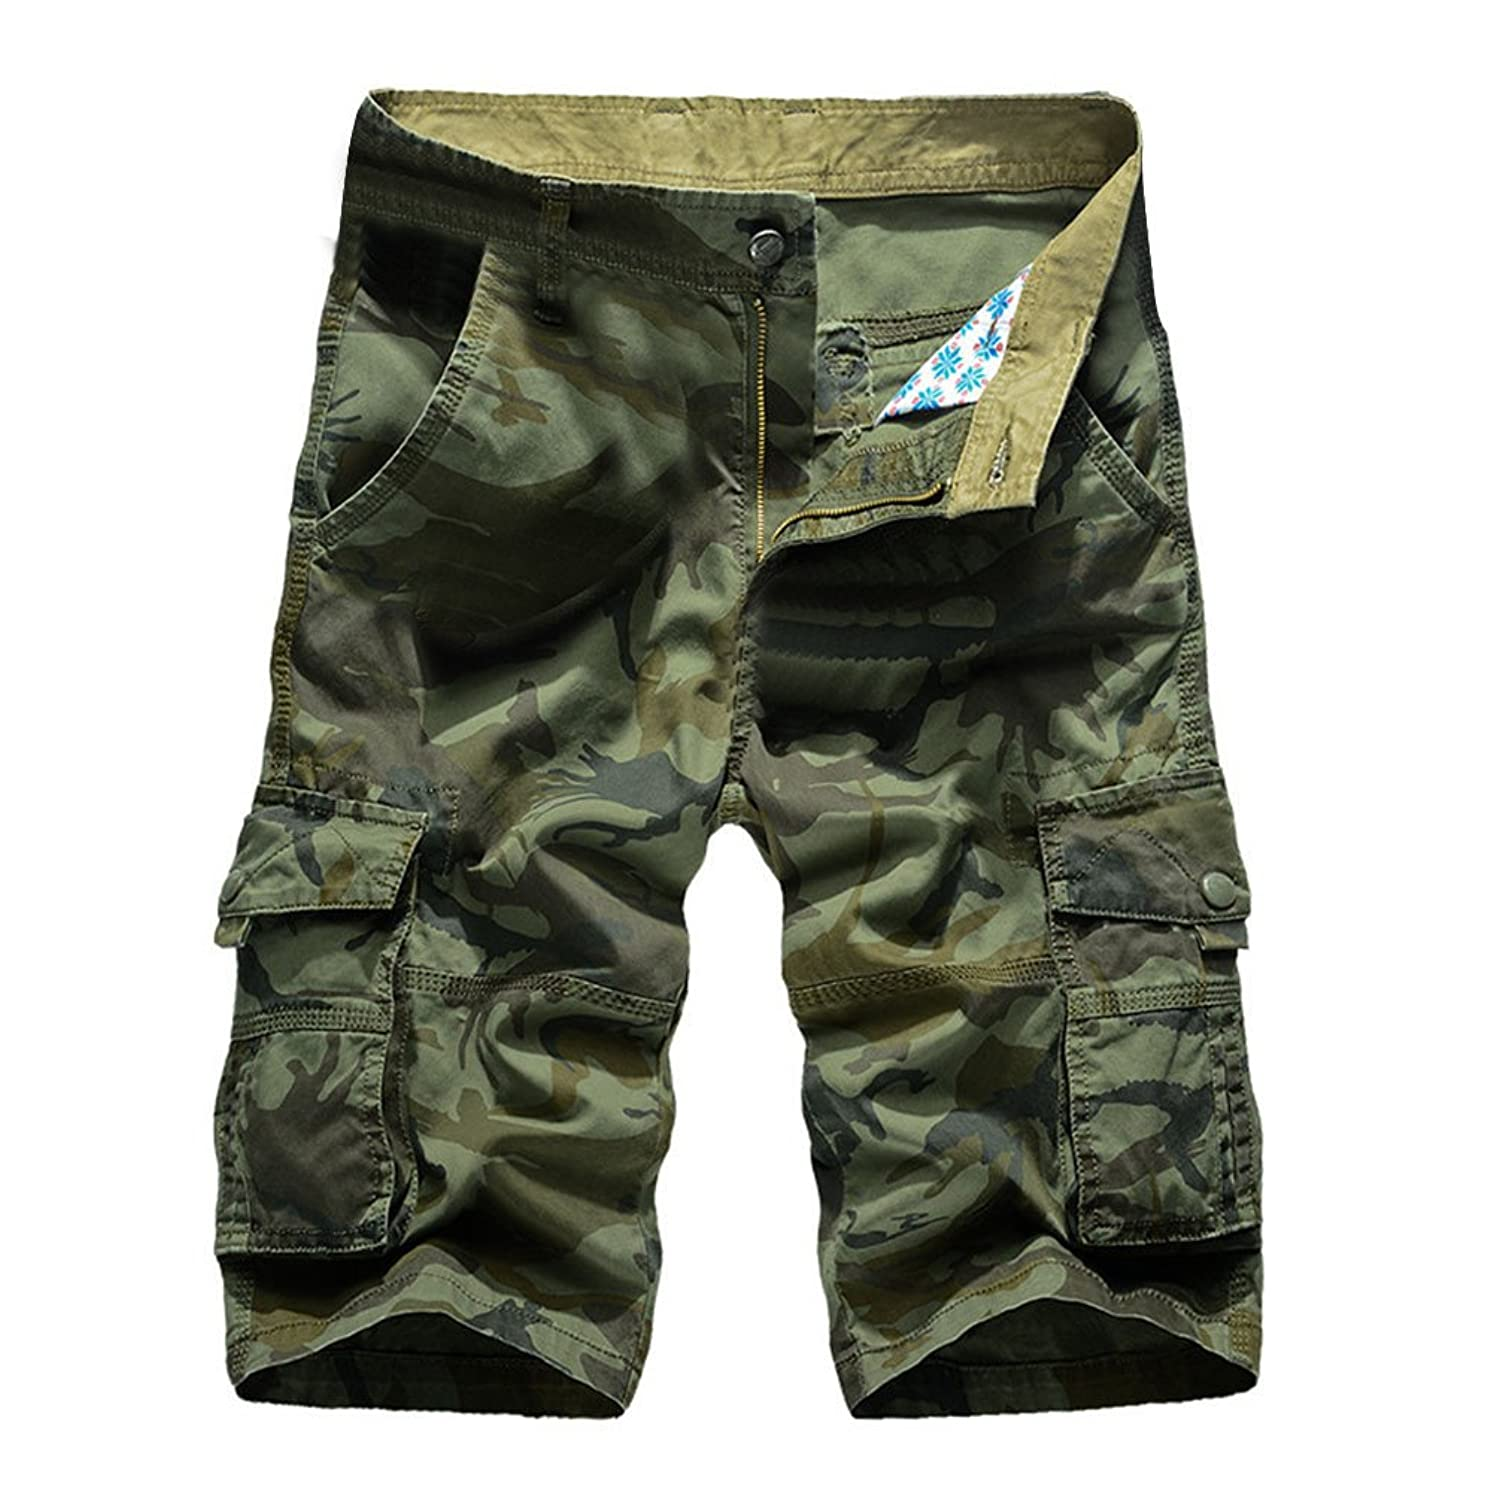 JJLIKER Mens Lightweight Multi Pocket Casual Cargo Shorts Big and Tall Pants Cotton Relaxed Fit Outdoor